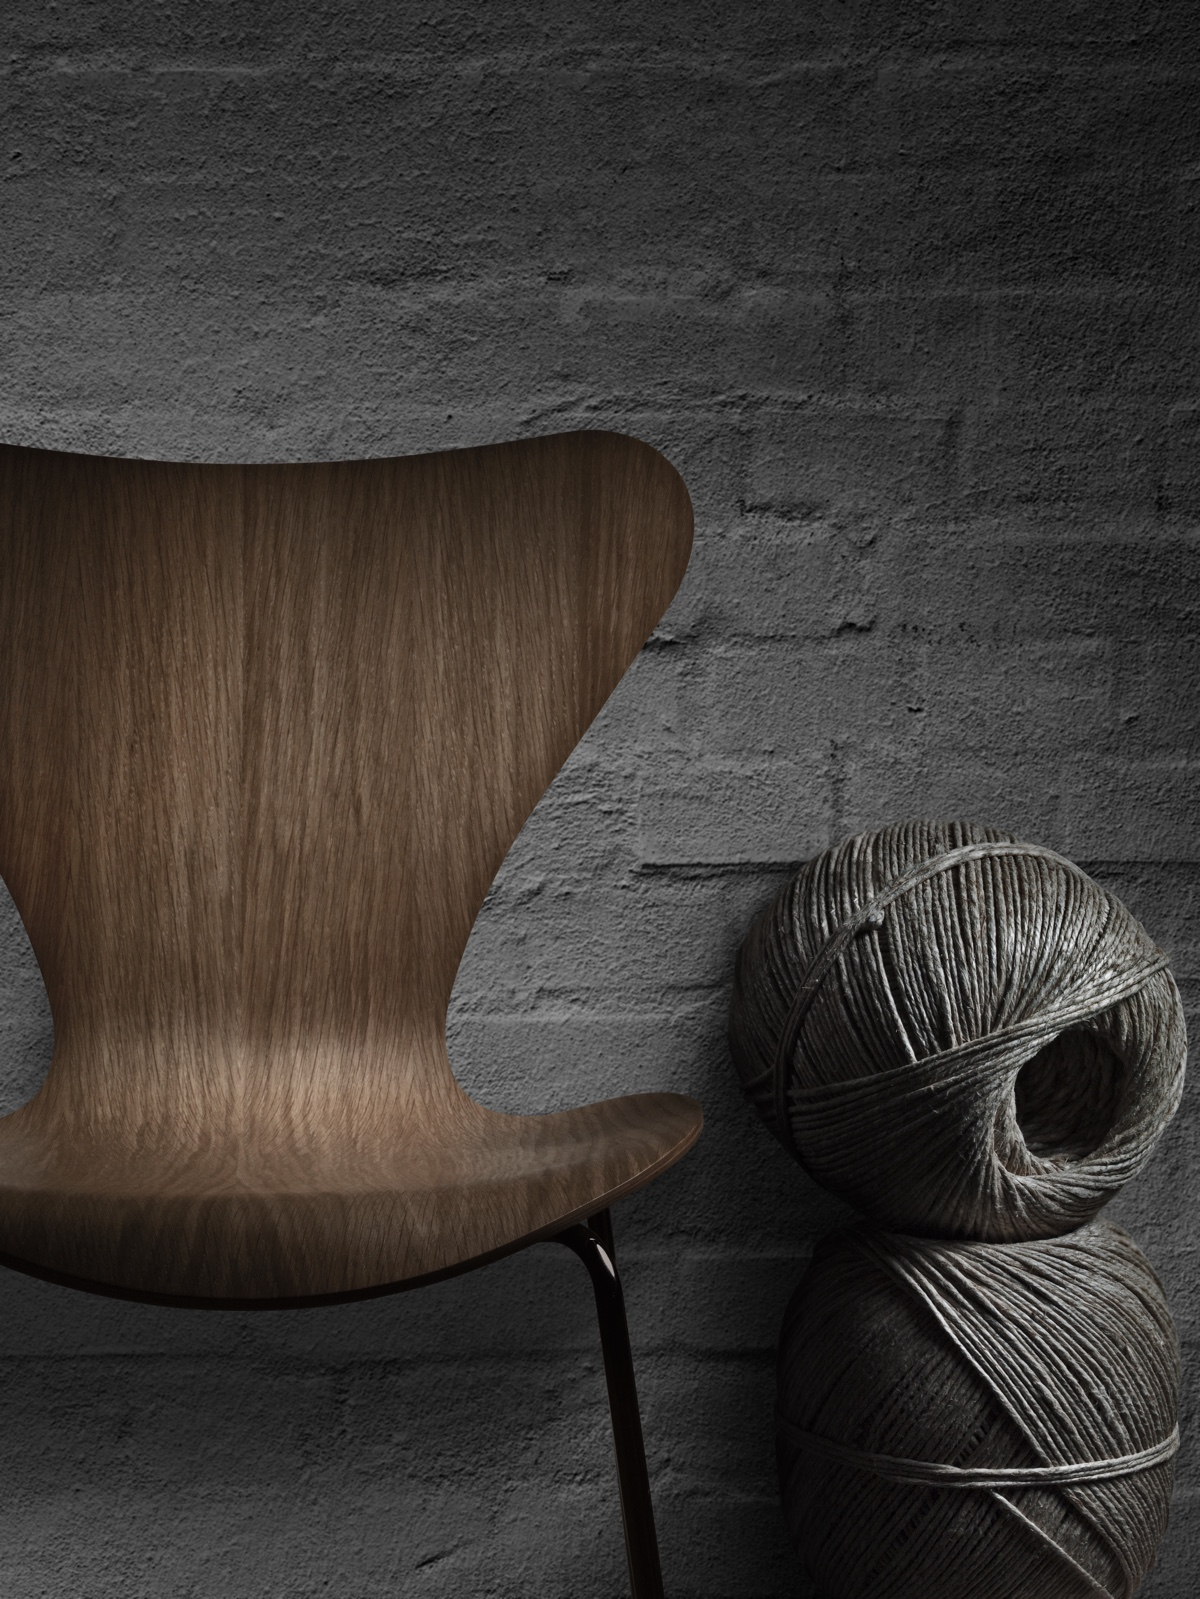 The Series 7™ chair'siconic profile. Shown in natural oak.